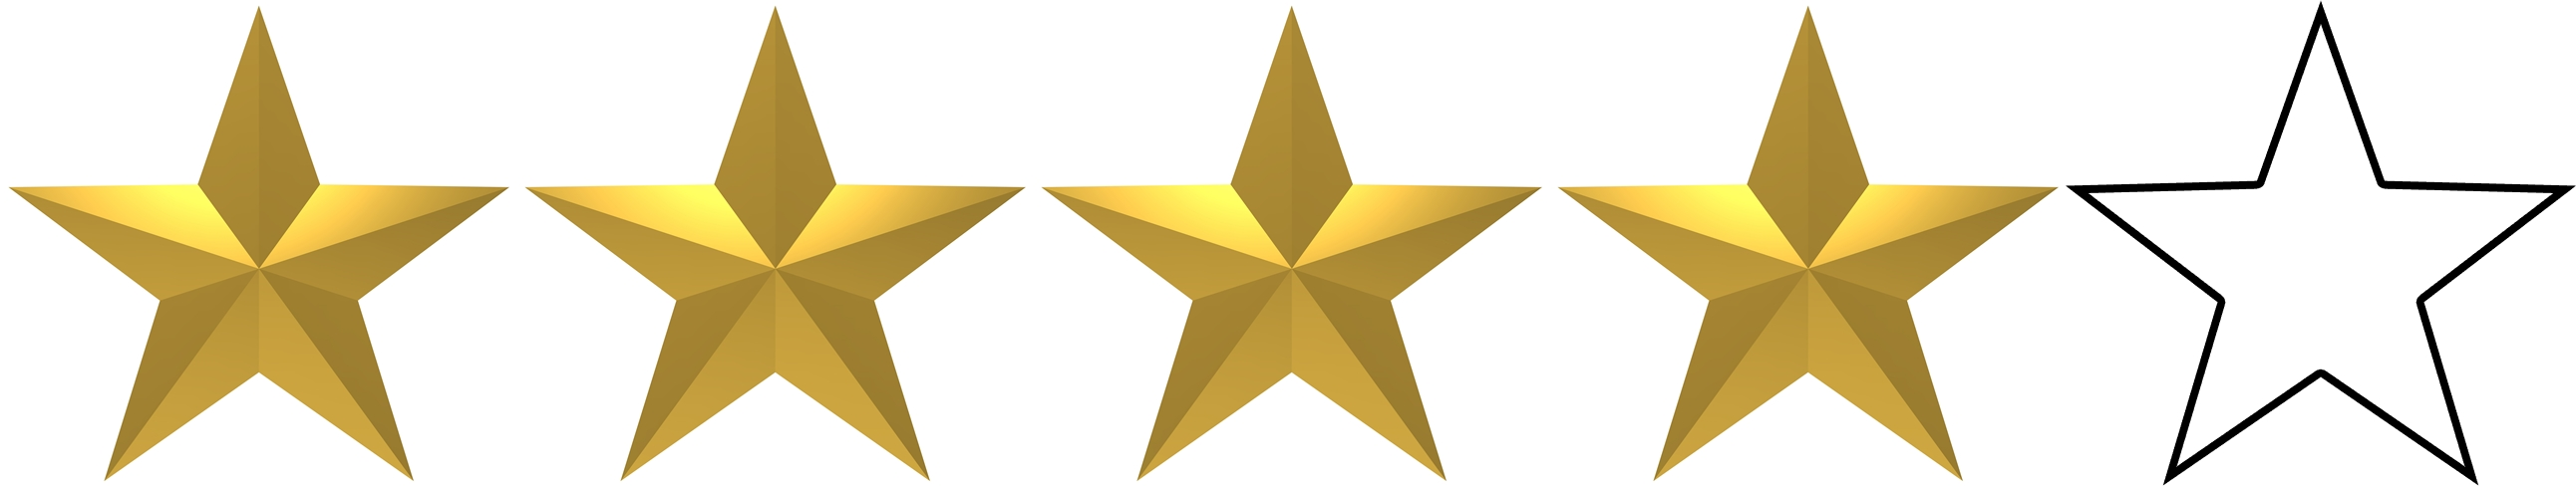 image of 4 out of 5 star rating